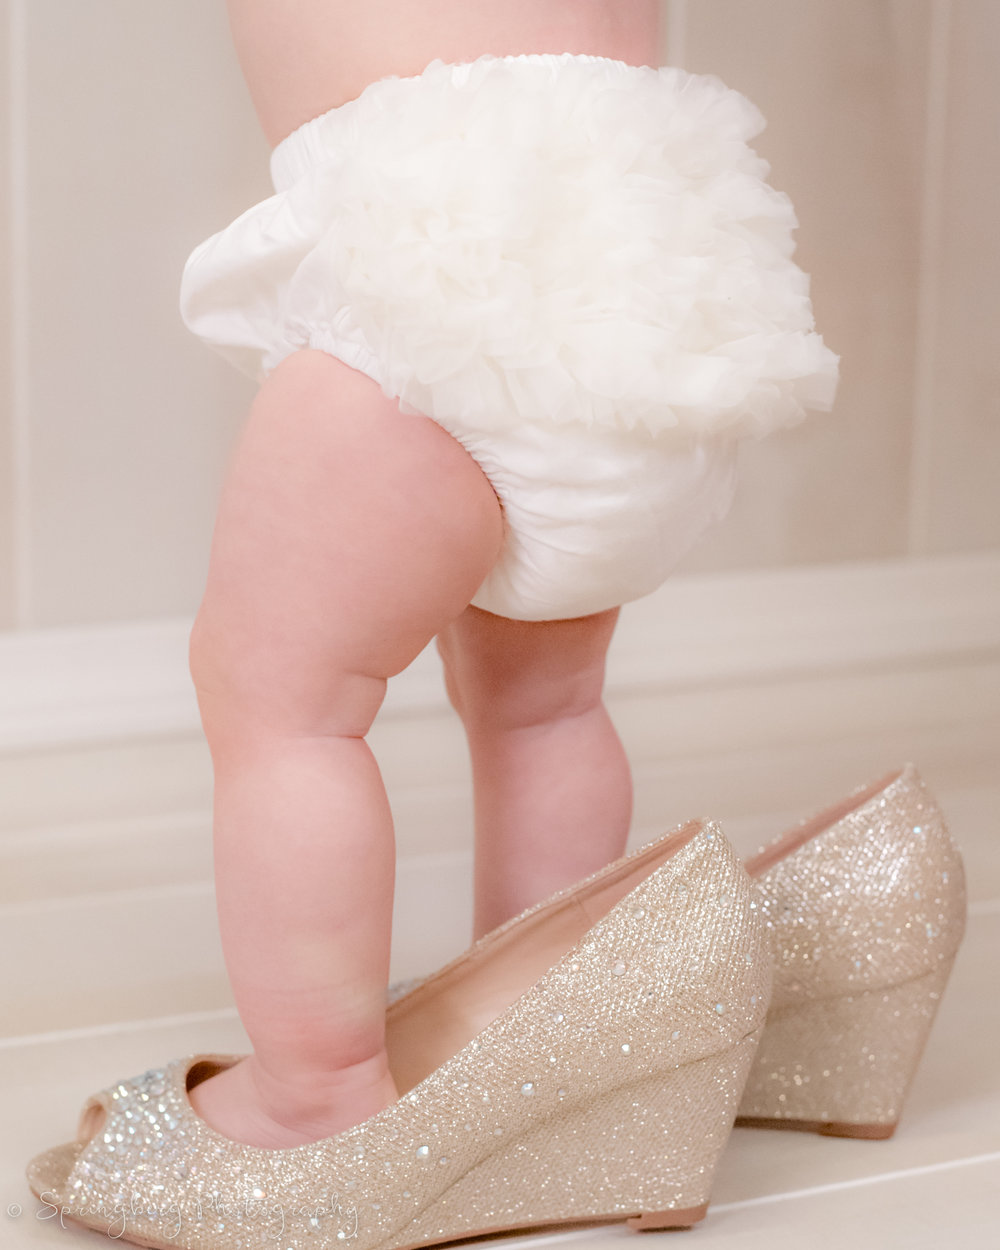 Just think: seeing how tiny her little feet once were in mama's wedding shoes will be so special when she grows up!